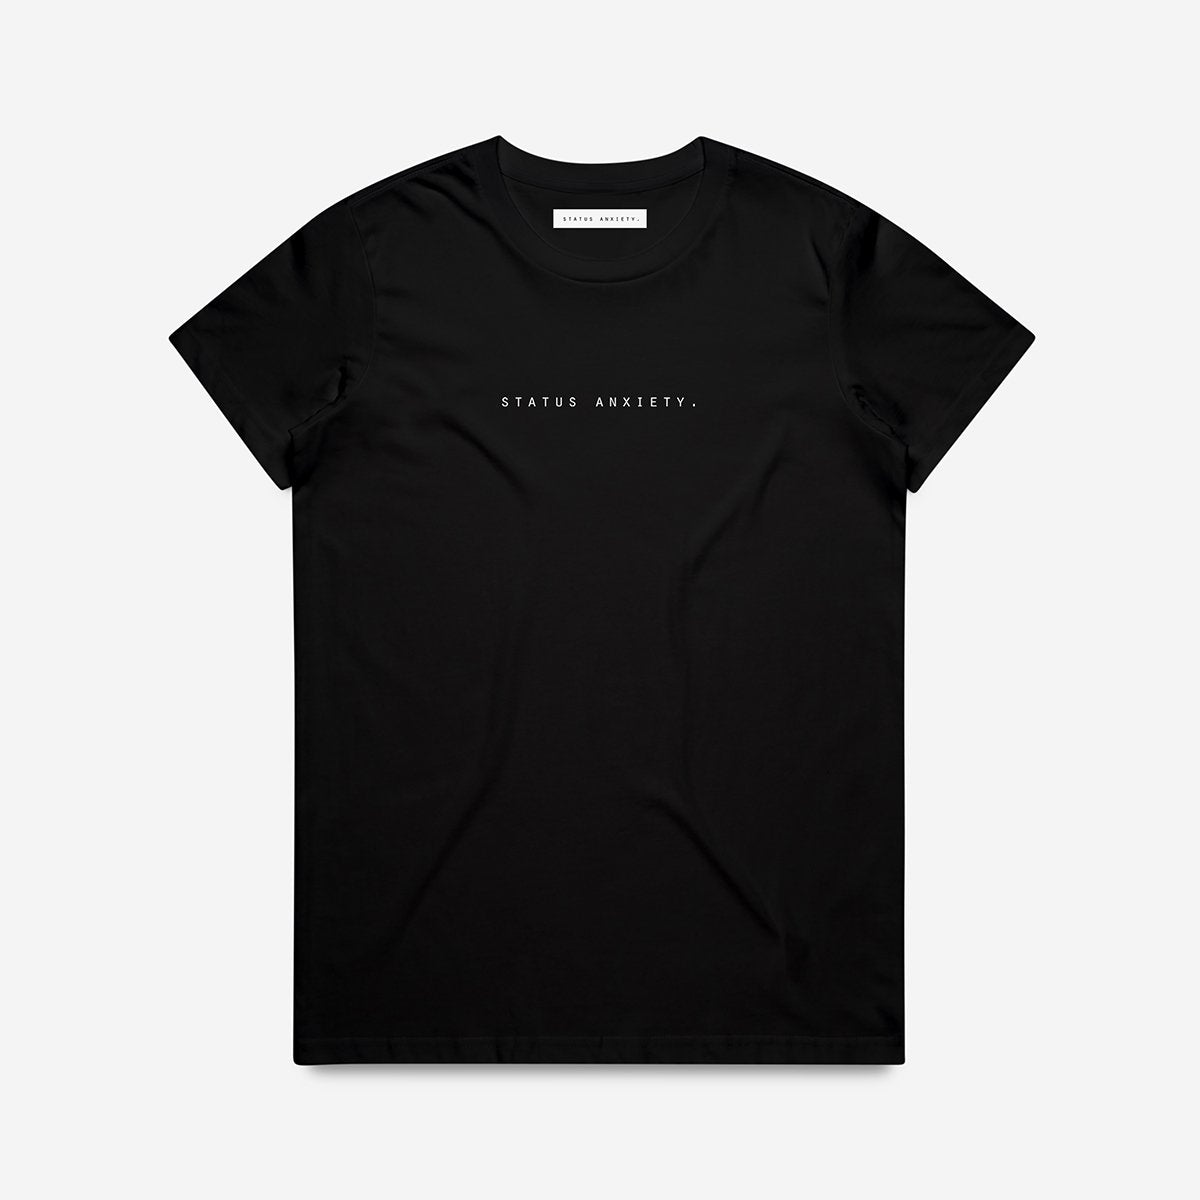 STATUS ANXIETY  //  Think It Over Tee BLACK